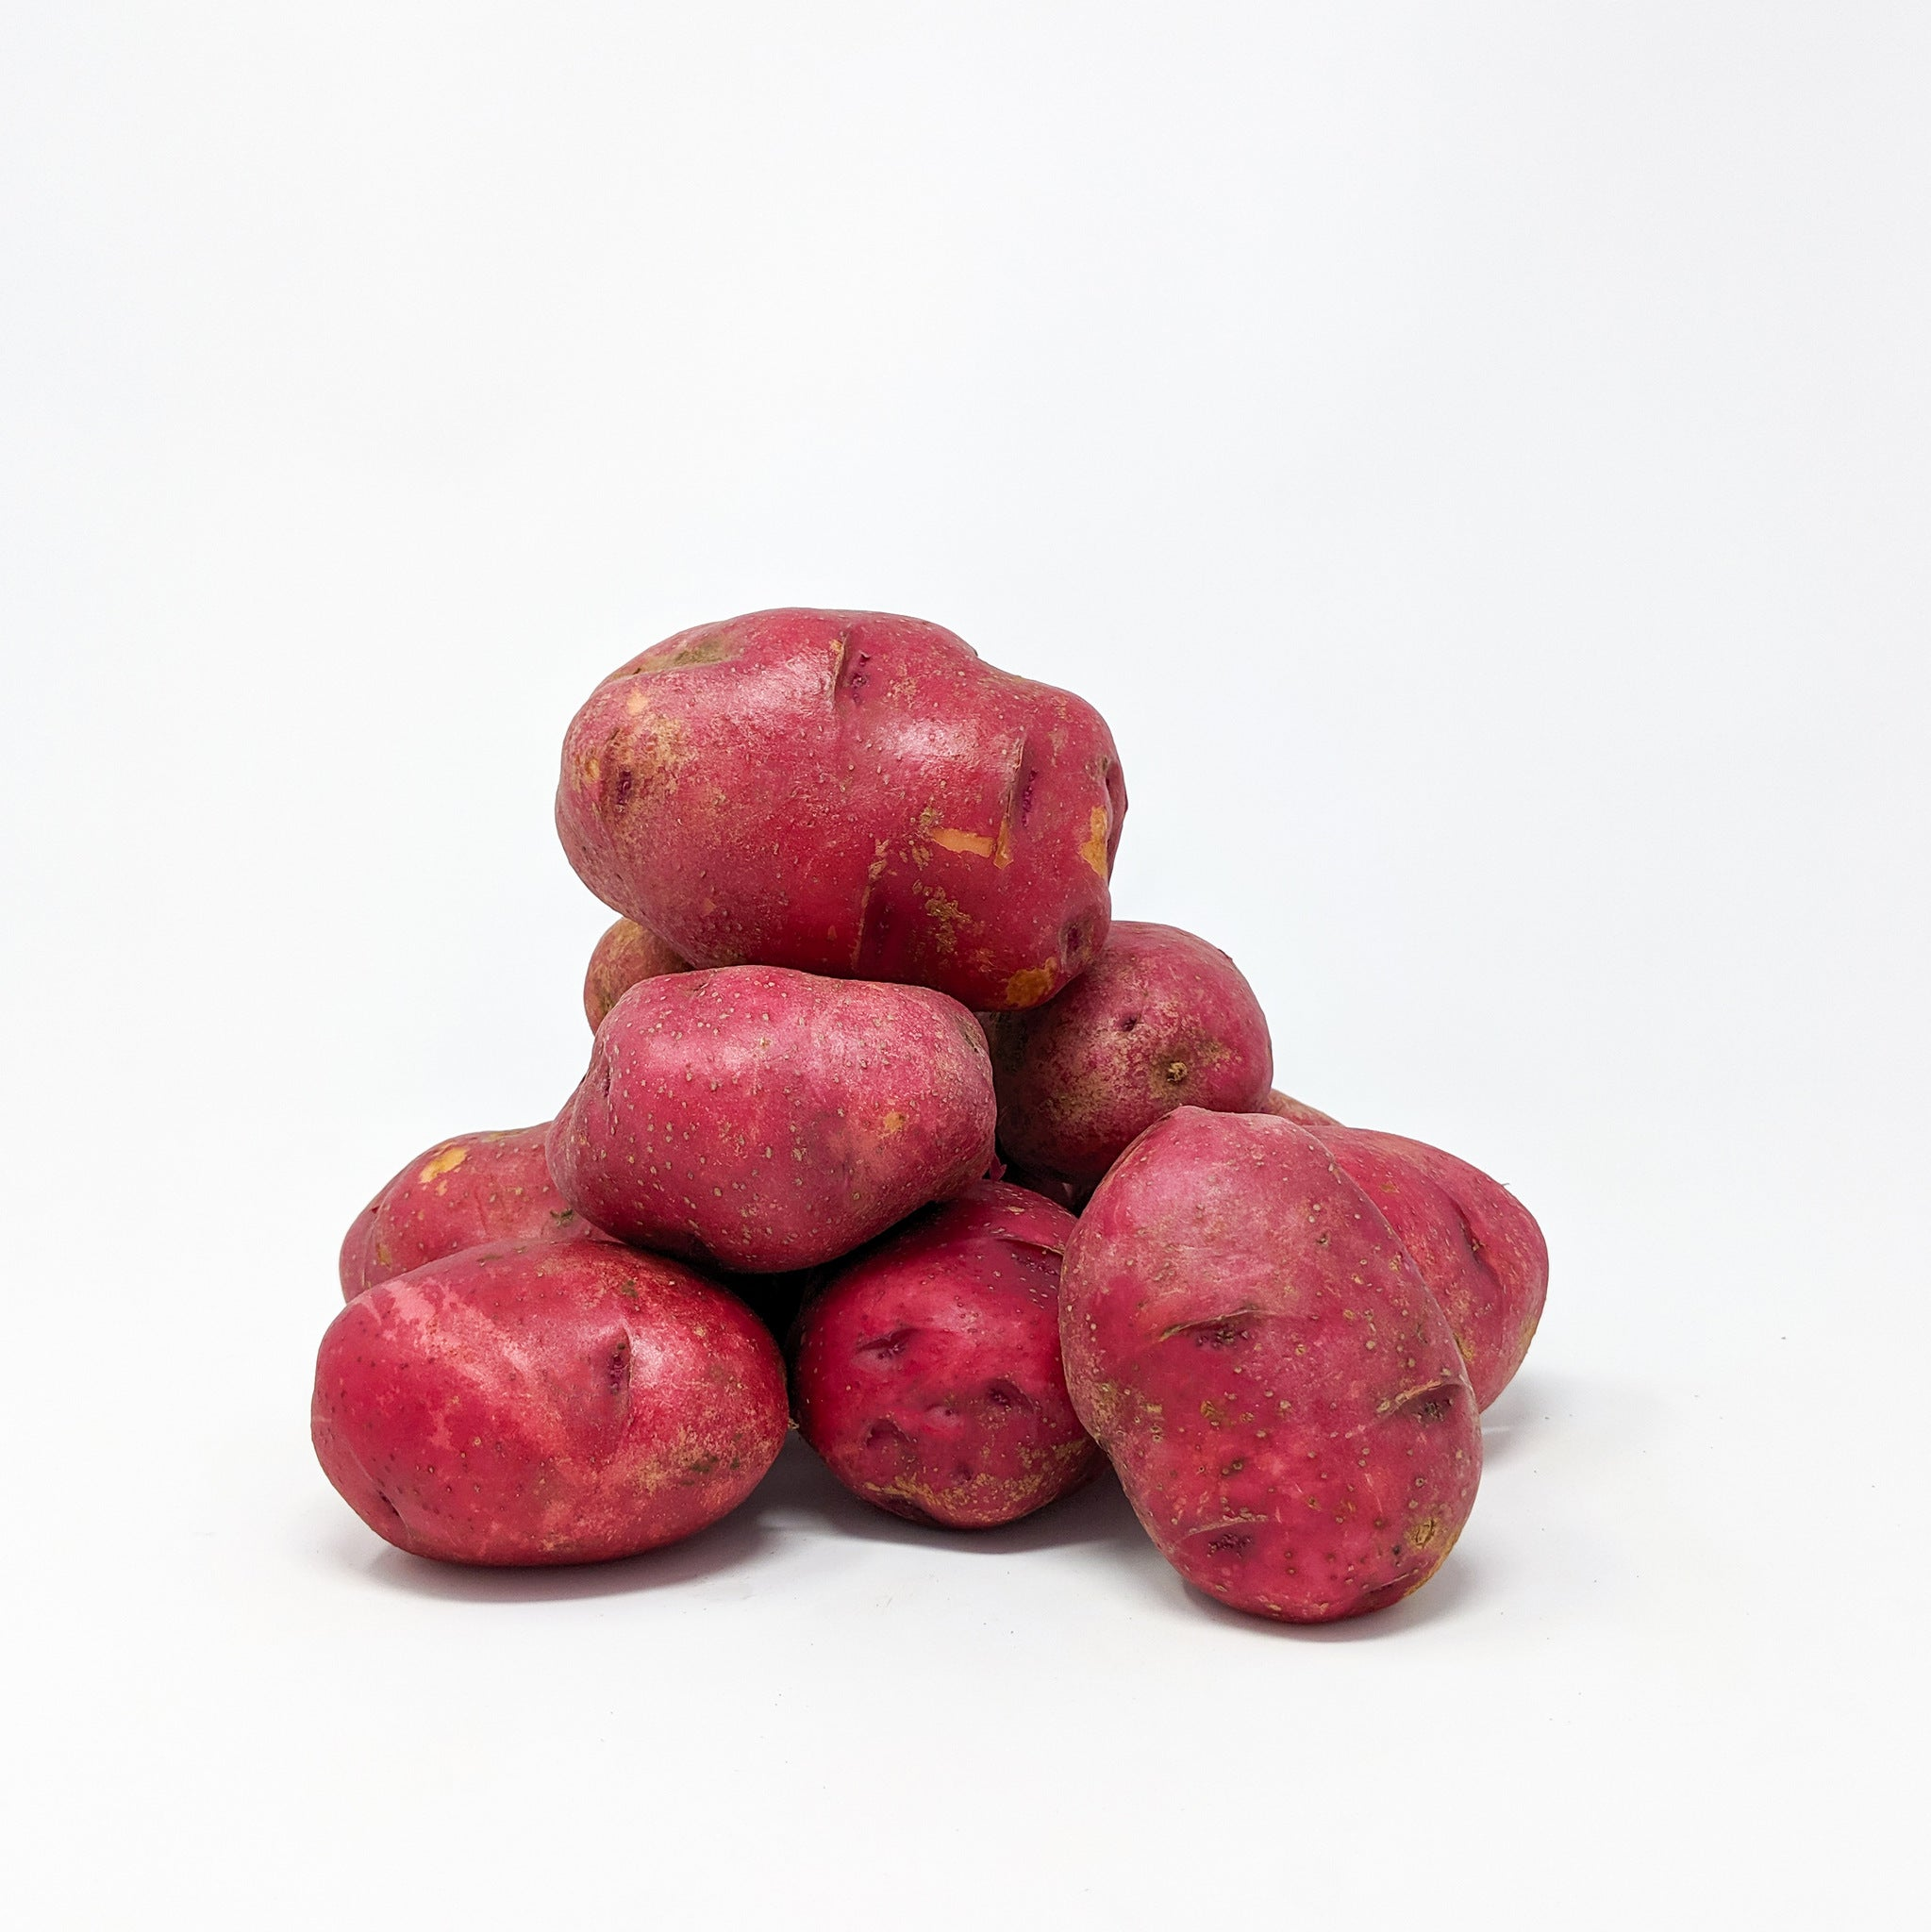 Large Red Potatoes (various weights) - Locally Grown